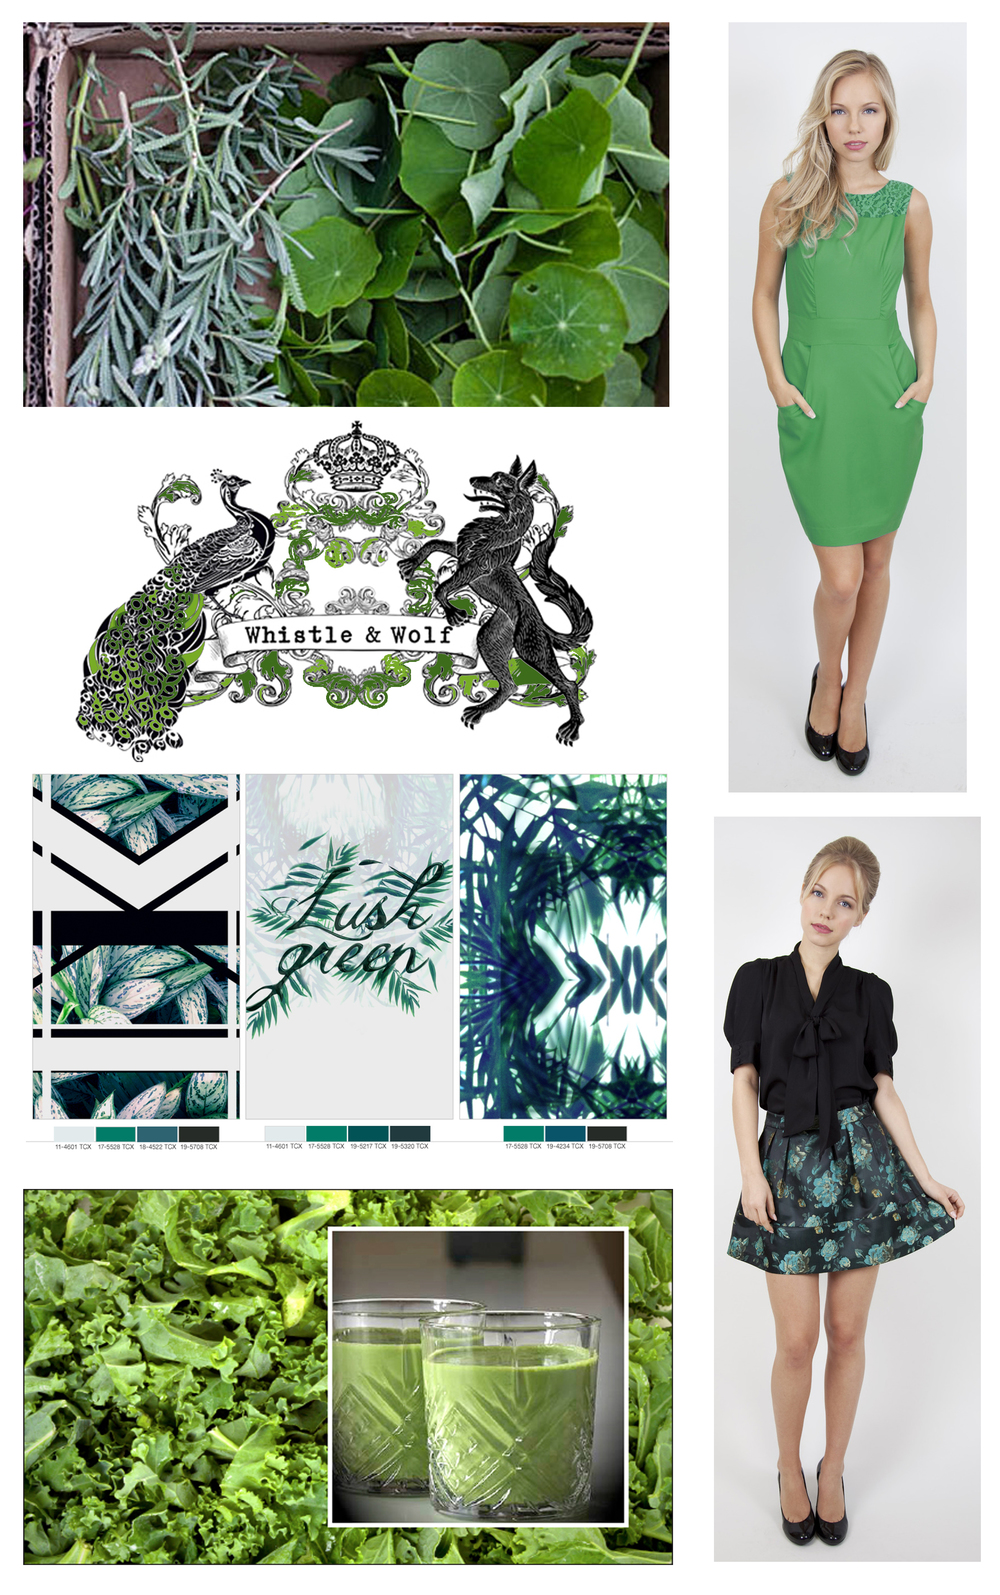 bottom left-ways with Kale, ideas from Emerald Street about the country's favourite greens. Top right, fitted dress with big pockets £50  Whistle & Wolf , bottom right green floral brocade skirt £45  Whistle & Wolf